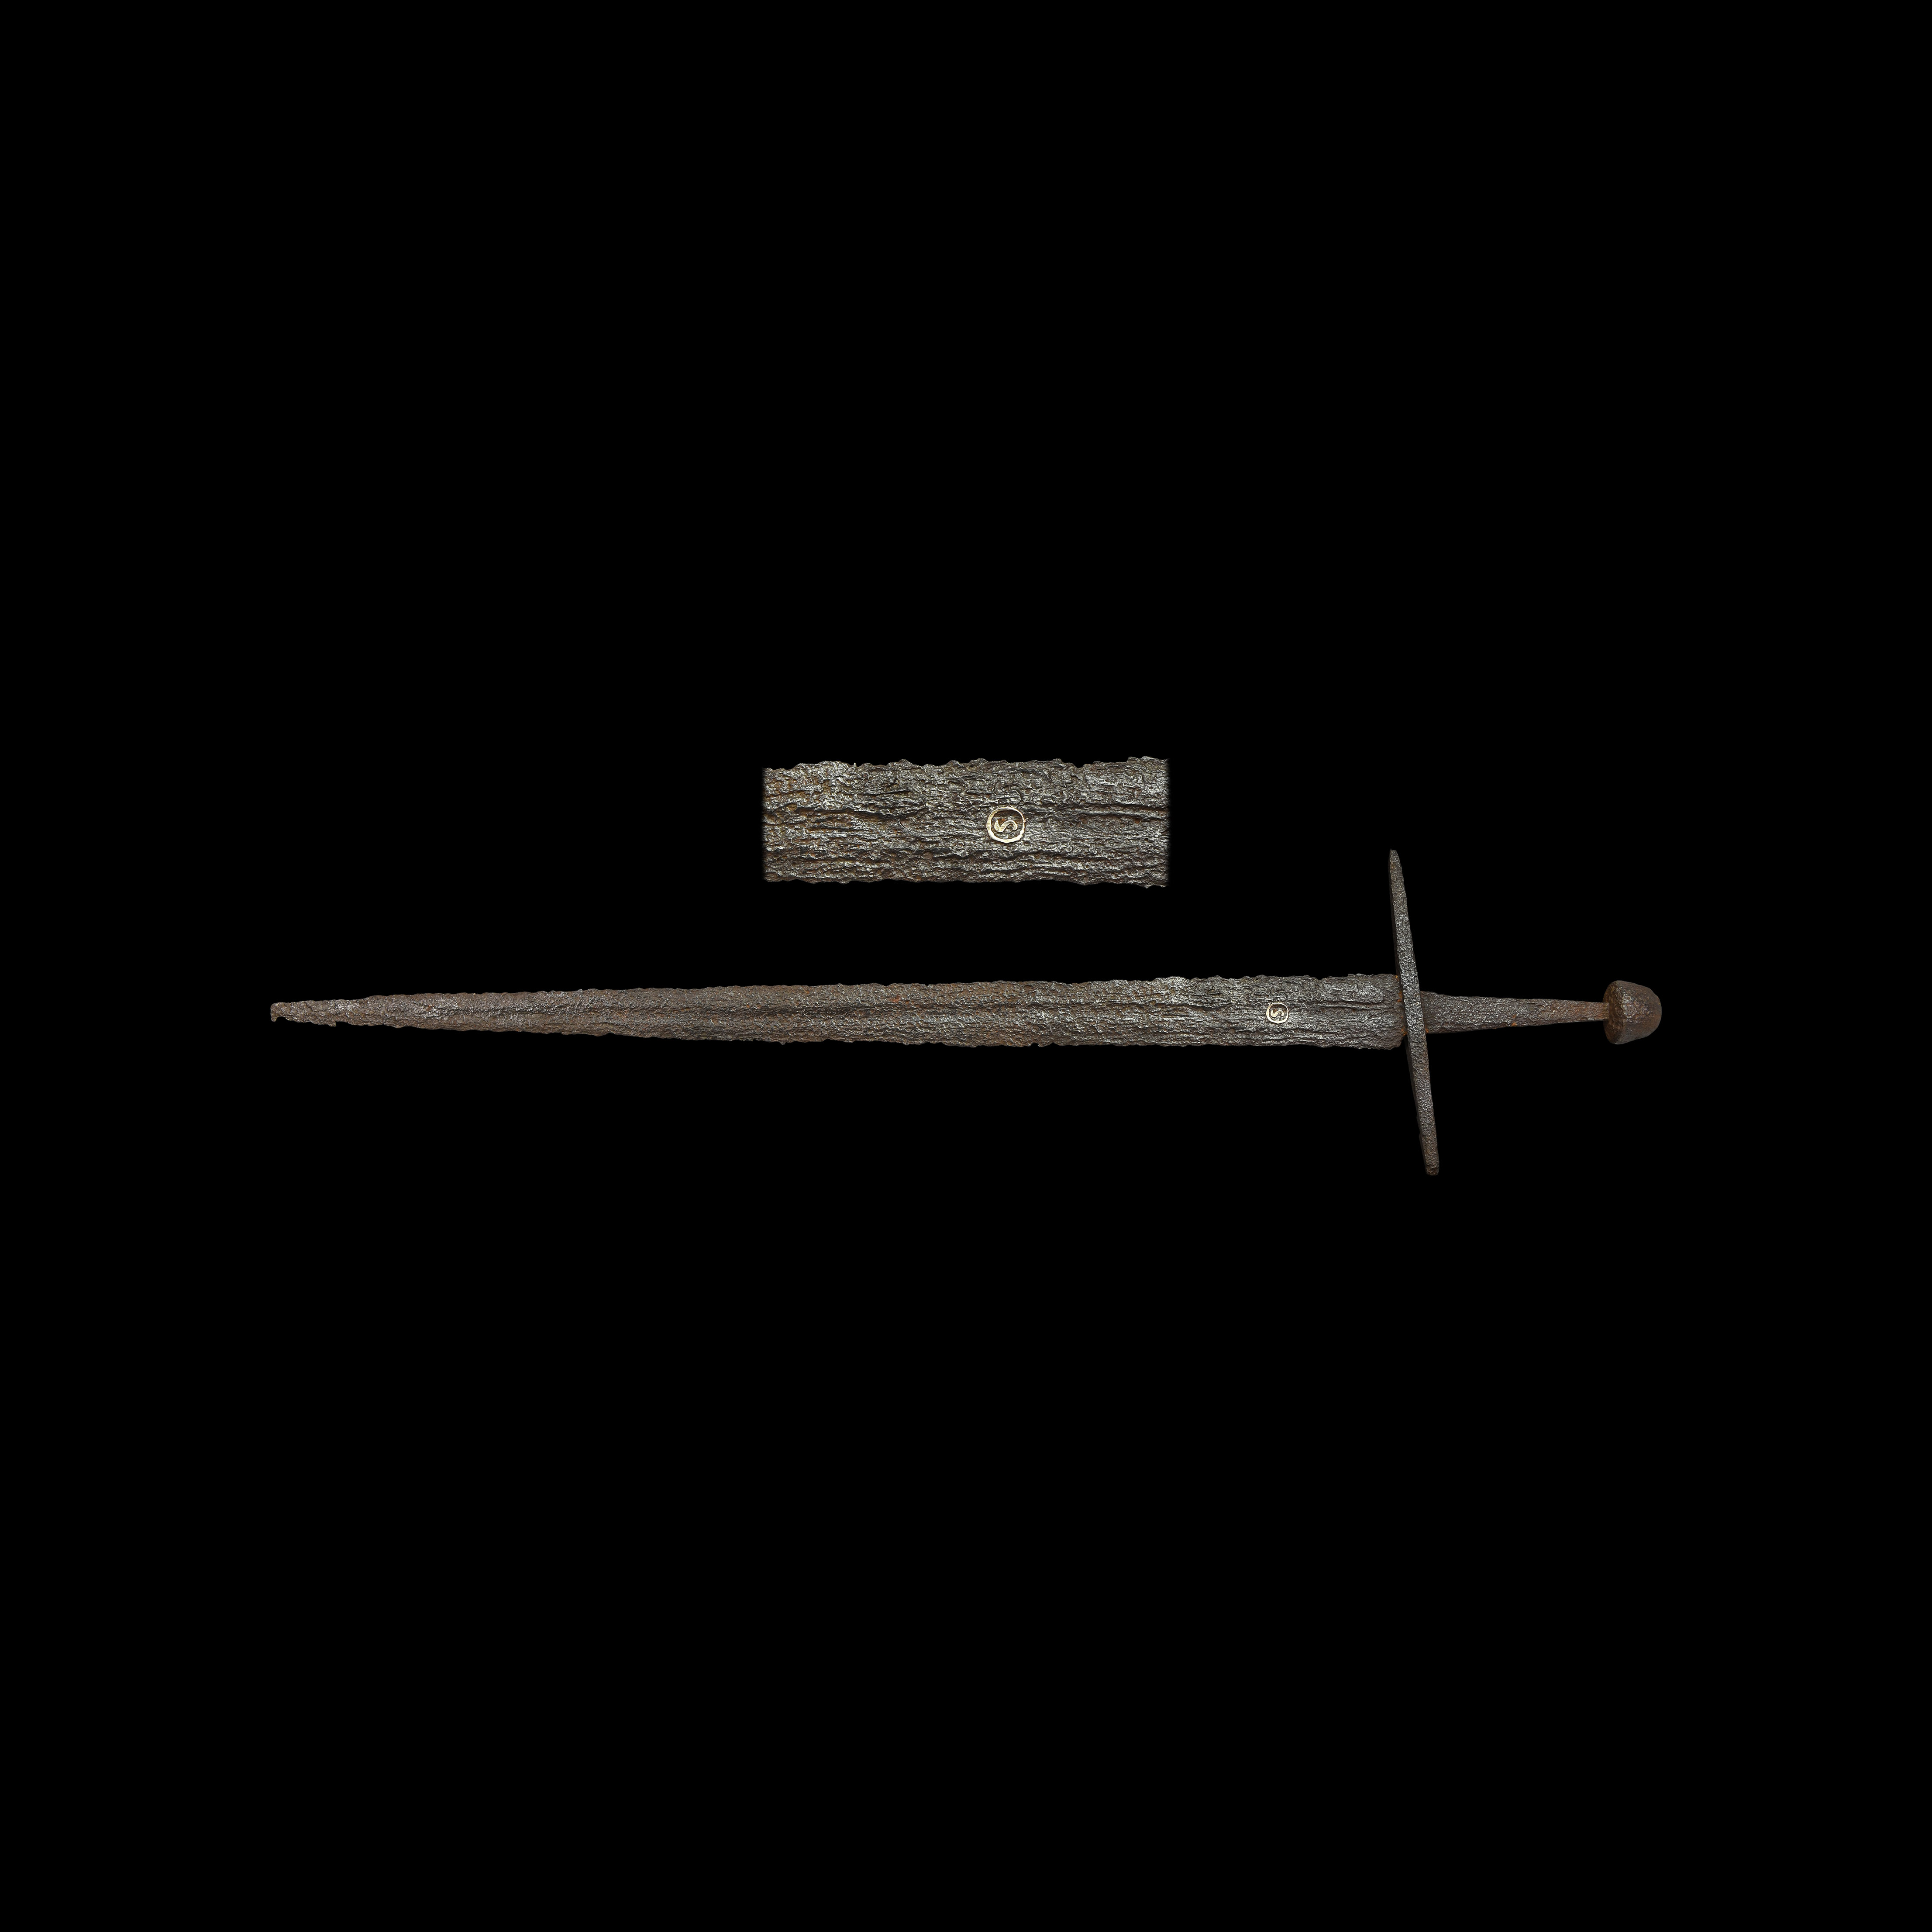 Medieval Single-Handed Double-Edged Sword with Inlaid S